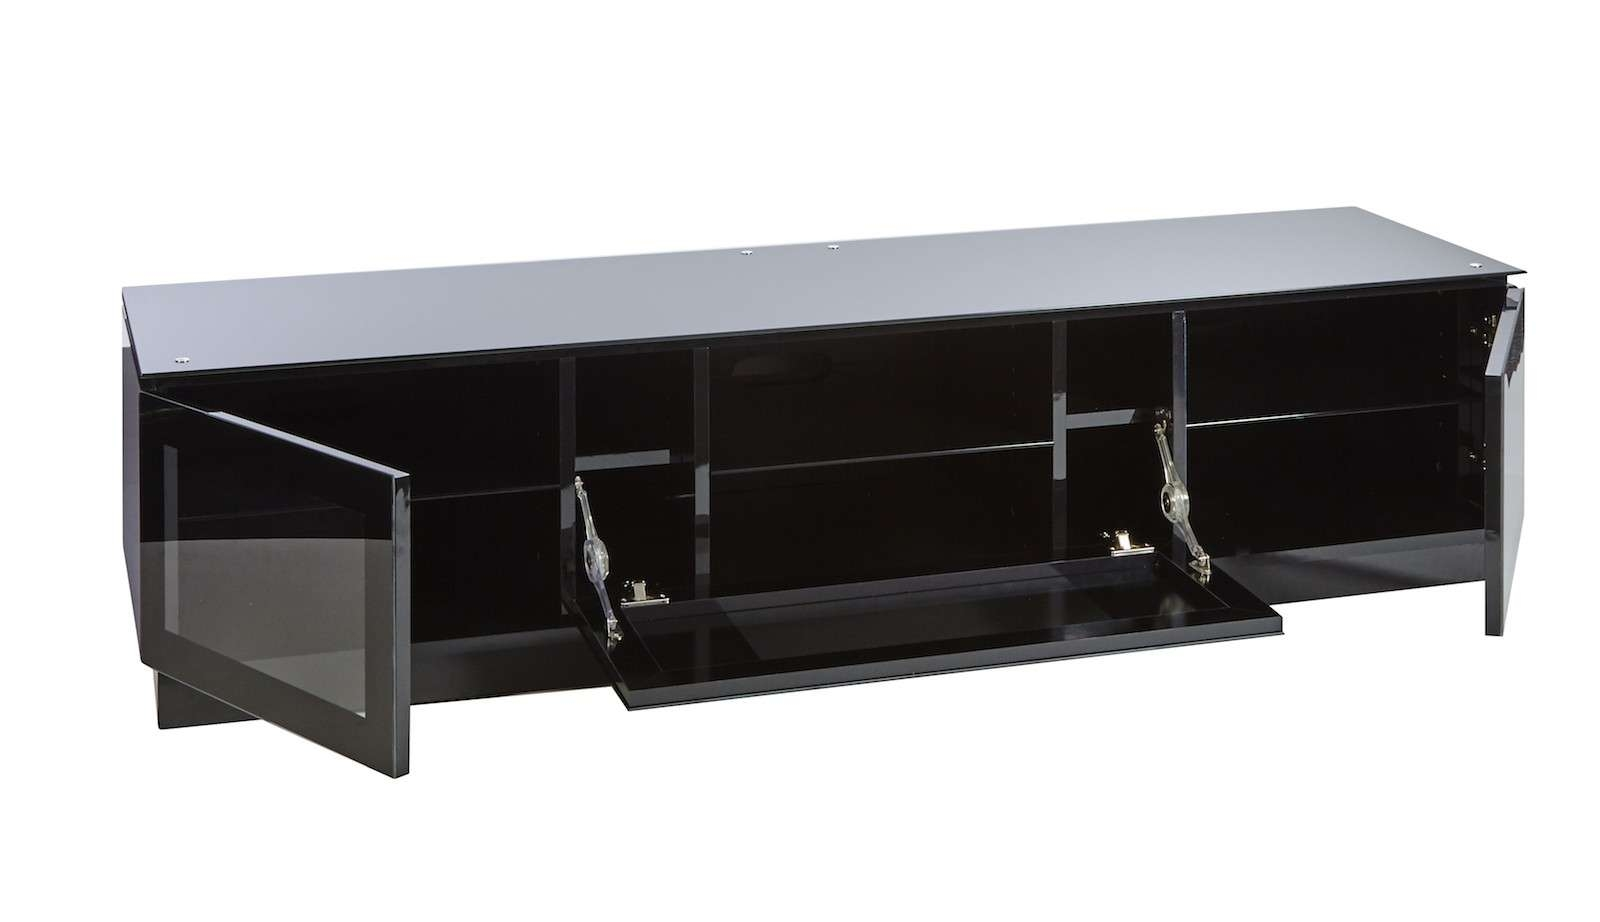 Black Gloss Tv Unit Up To 80 Inch Flat Screen Tv | Mmt D1800 Intended For Black Tv Cabinets With Doors (View 3 of 20)